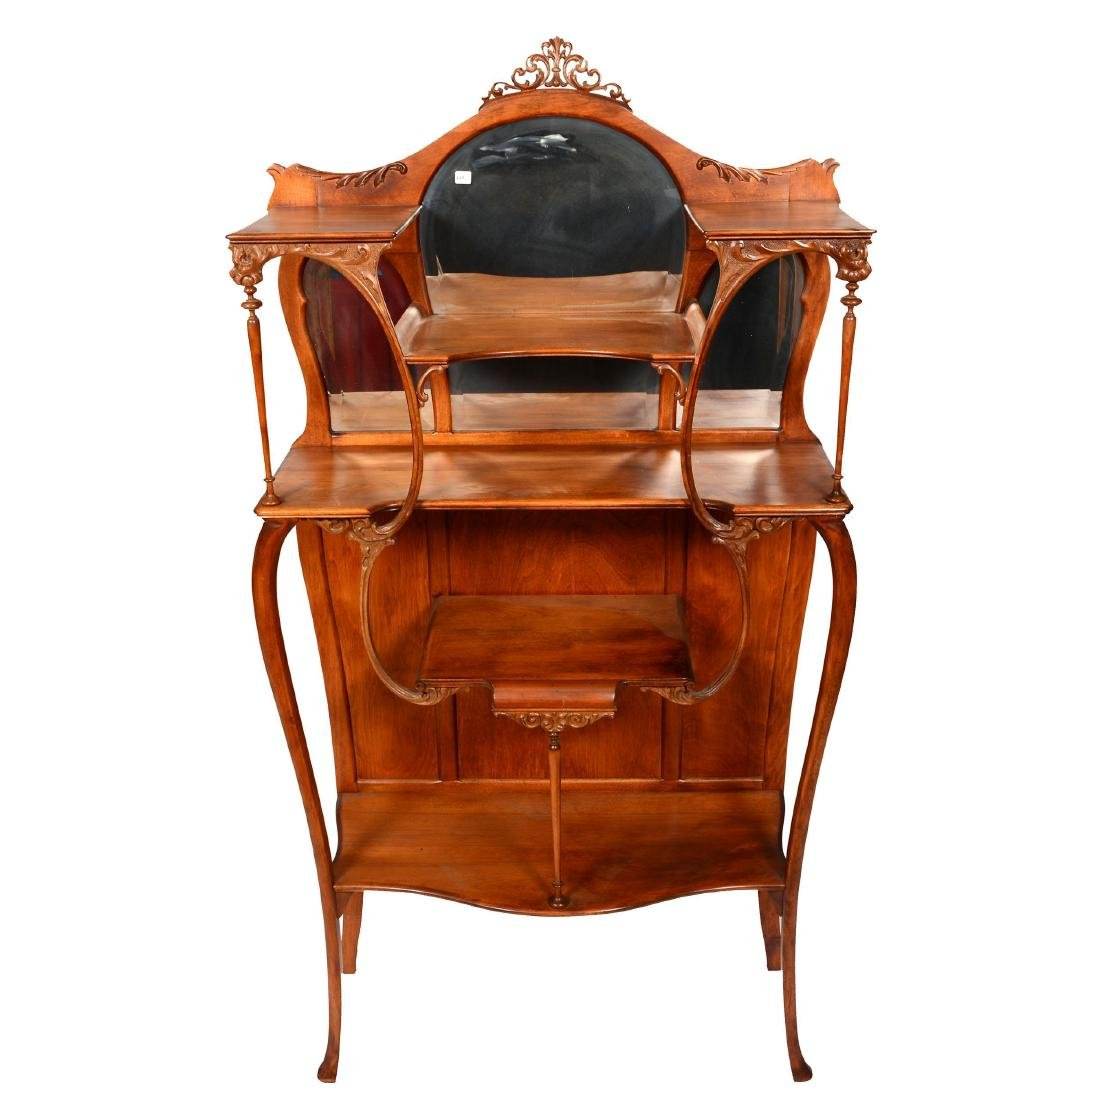 Delicately Carved Etagere